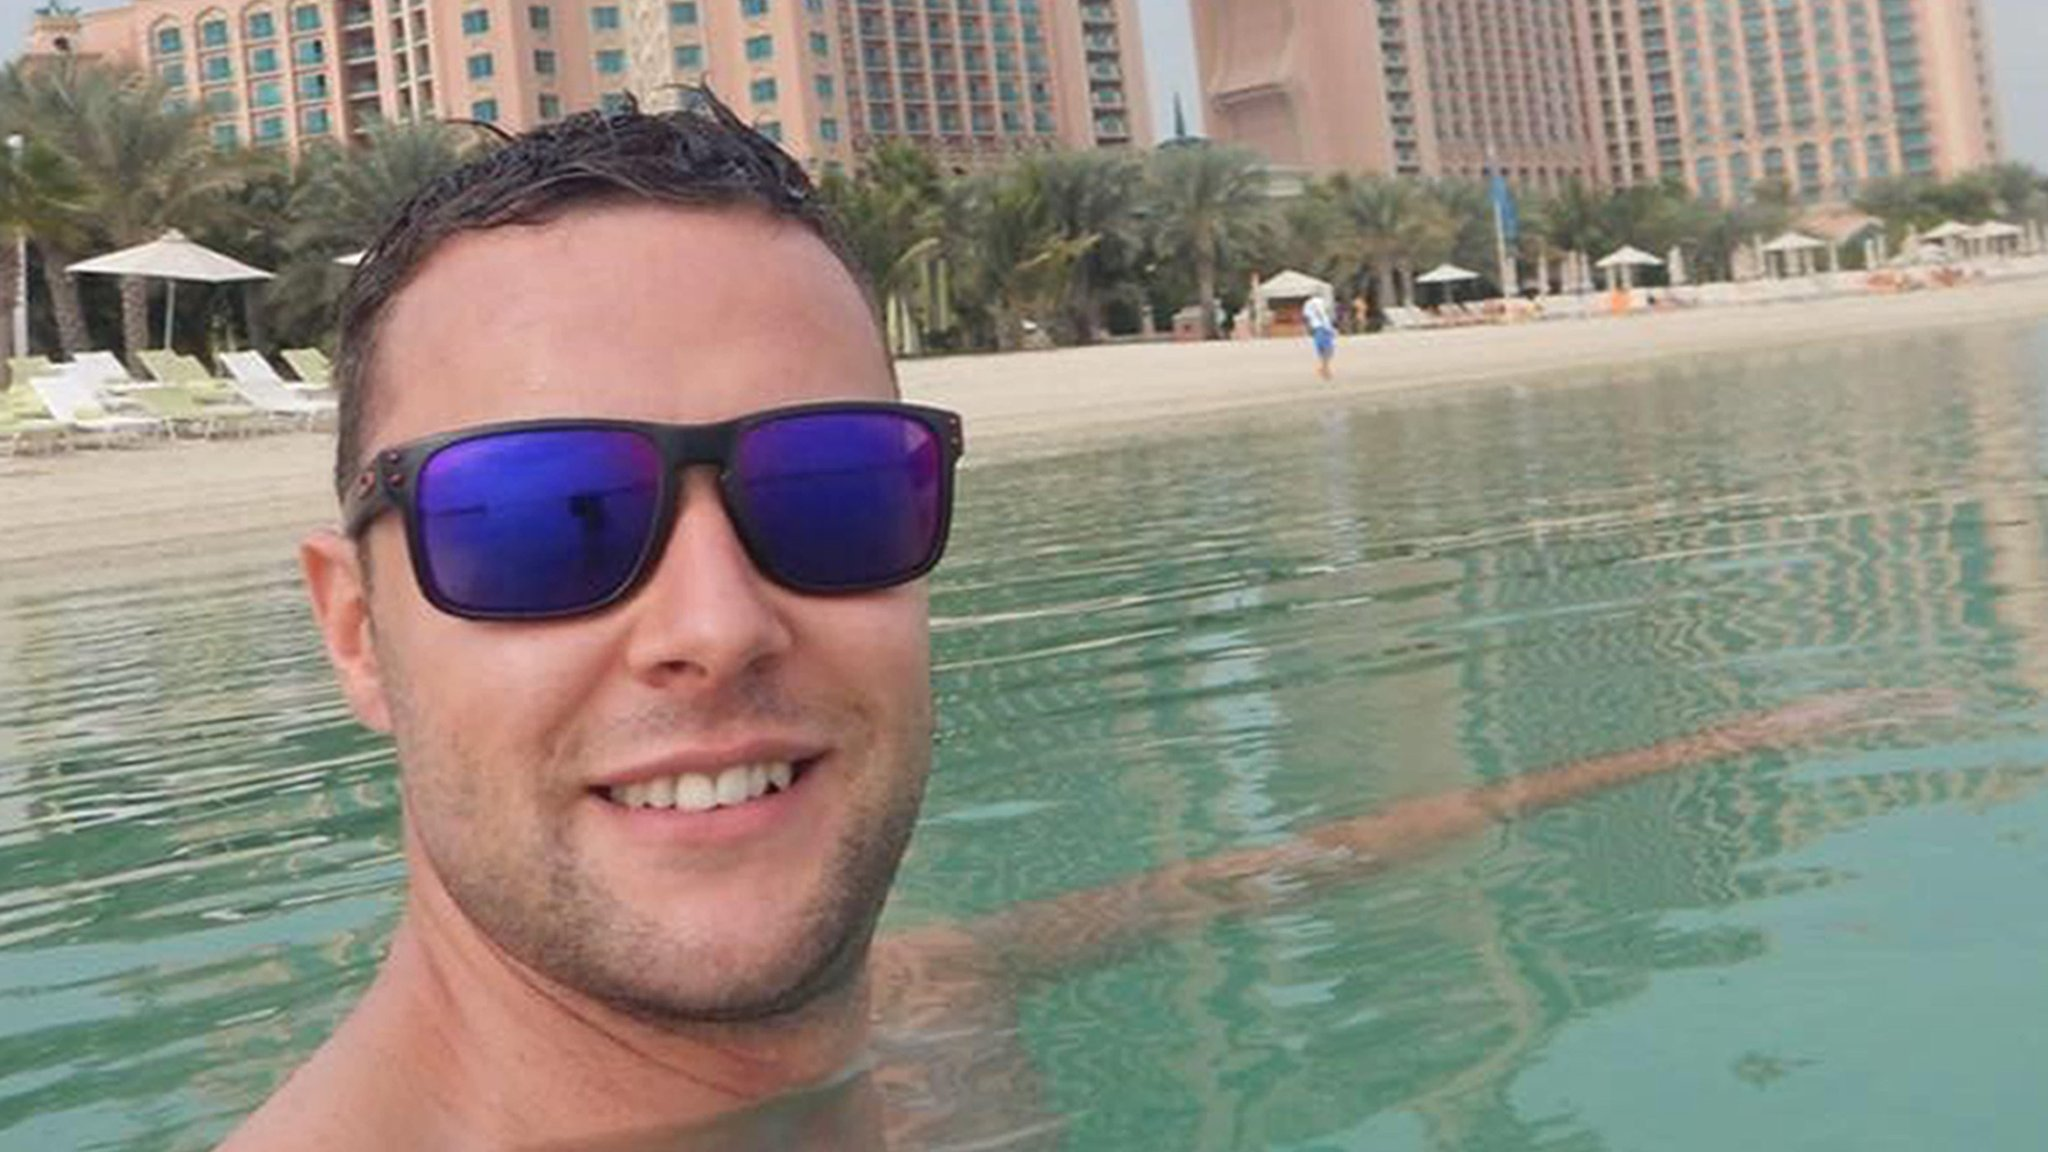 Charges dropped against Scot accused of public indecency in Dubai